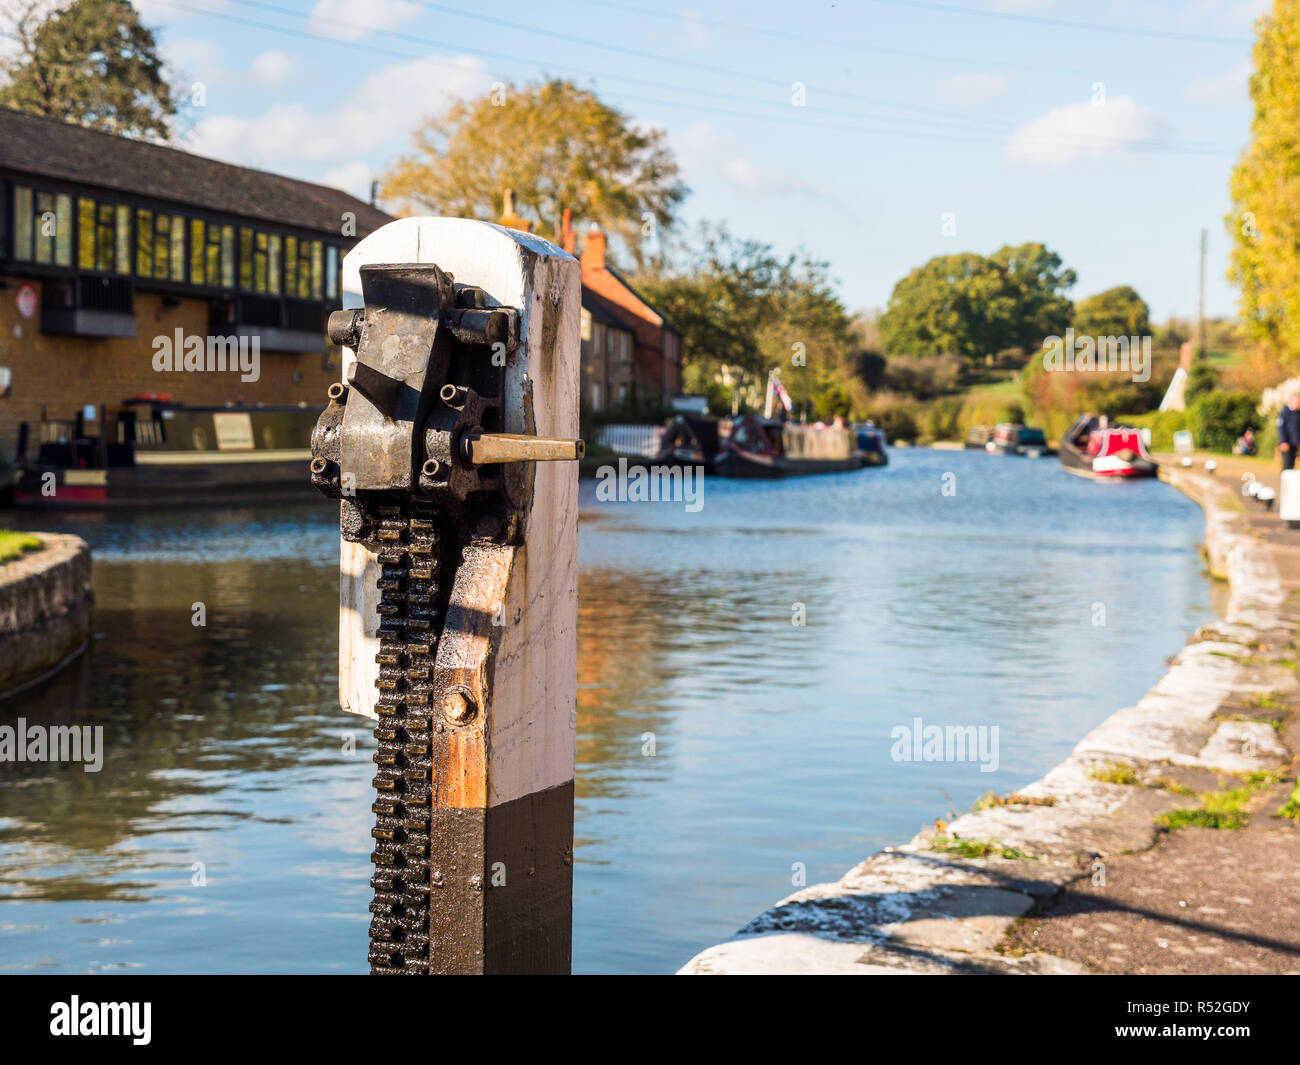 wide angle day view of boat canal in stoke bruerne england uk. - Stock Image